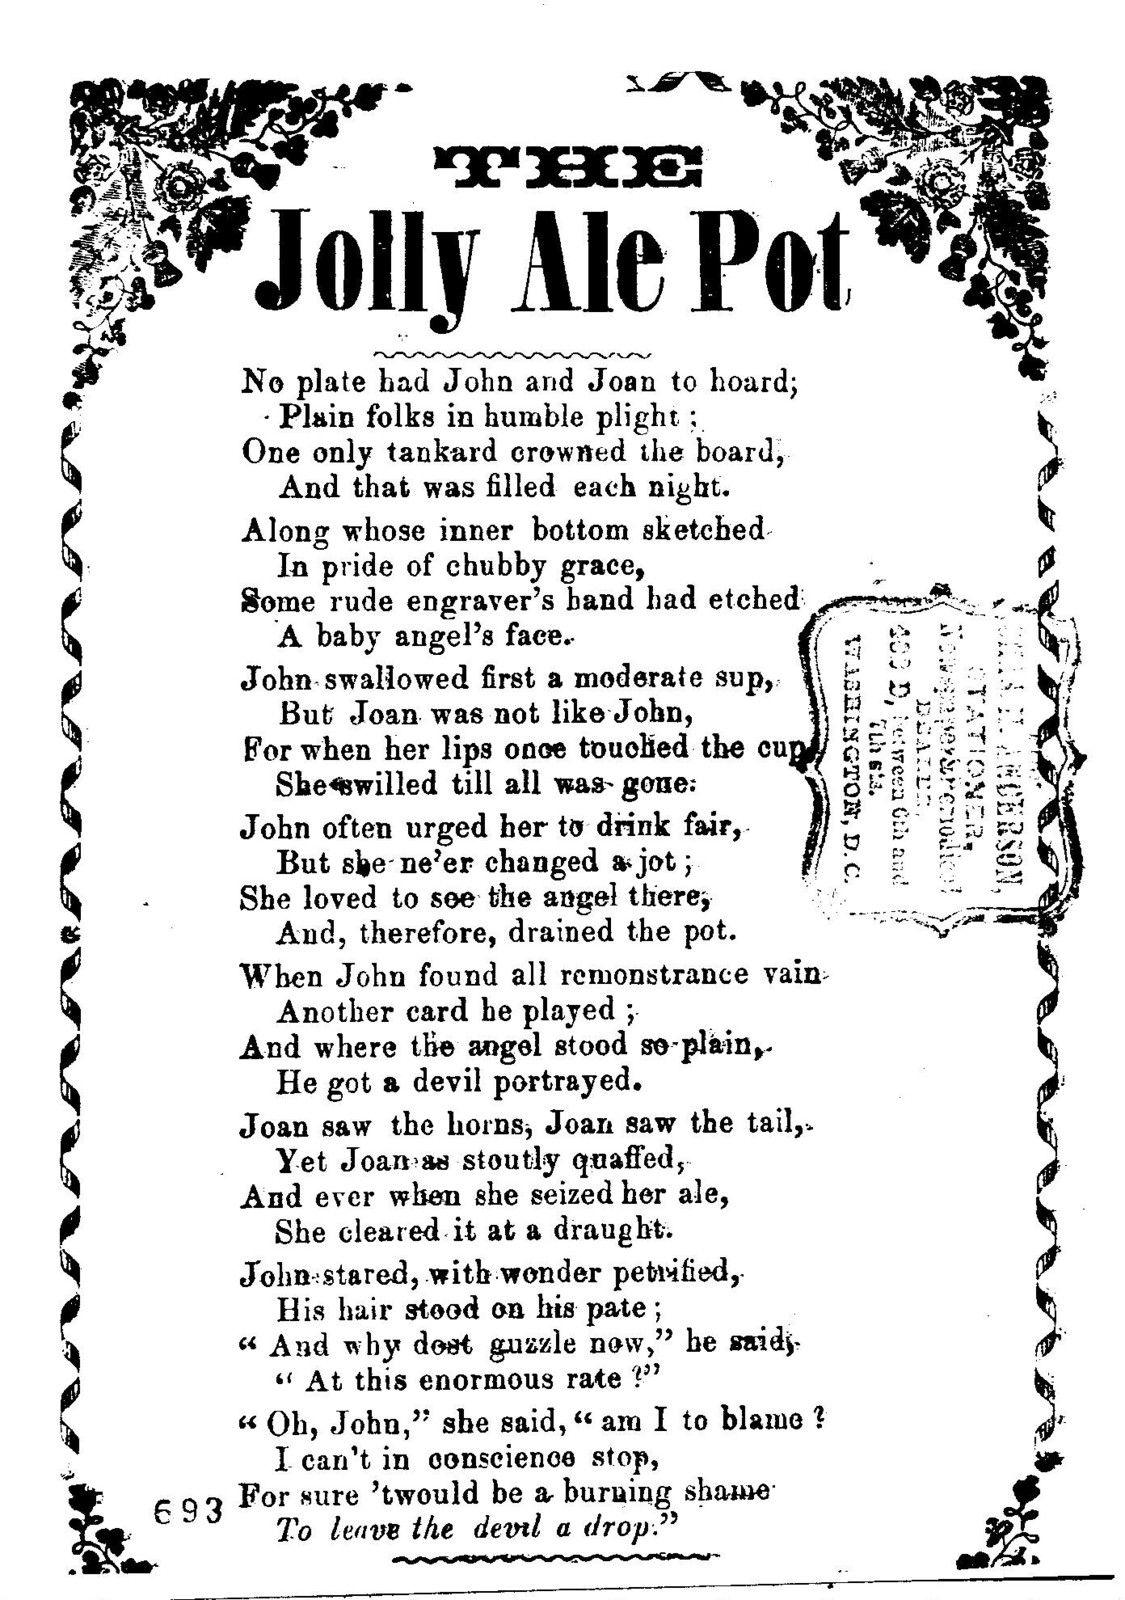 The jolly ale pot. Chas H. Anderson, stationer, Newspaper and &c. 402 D. between 6 and 7th. Sts. Washington, D. C